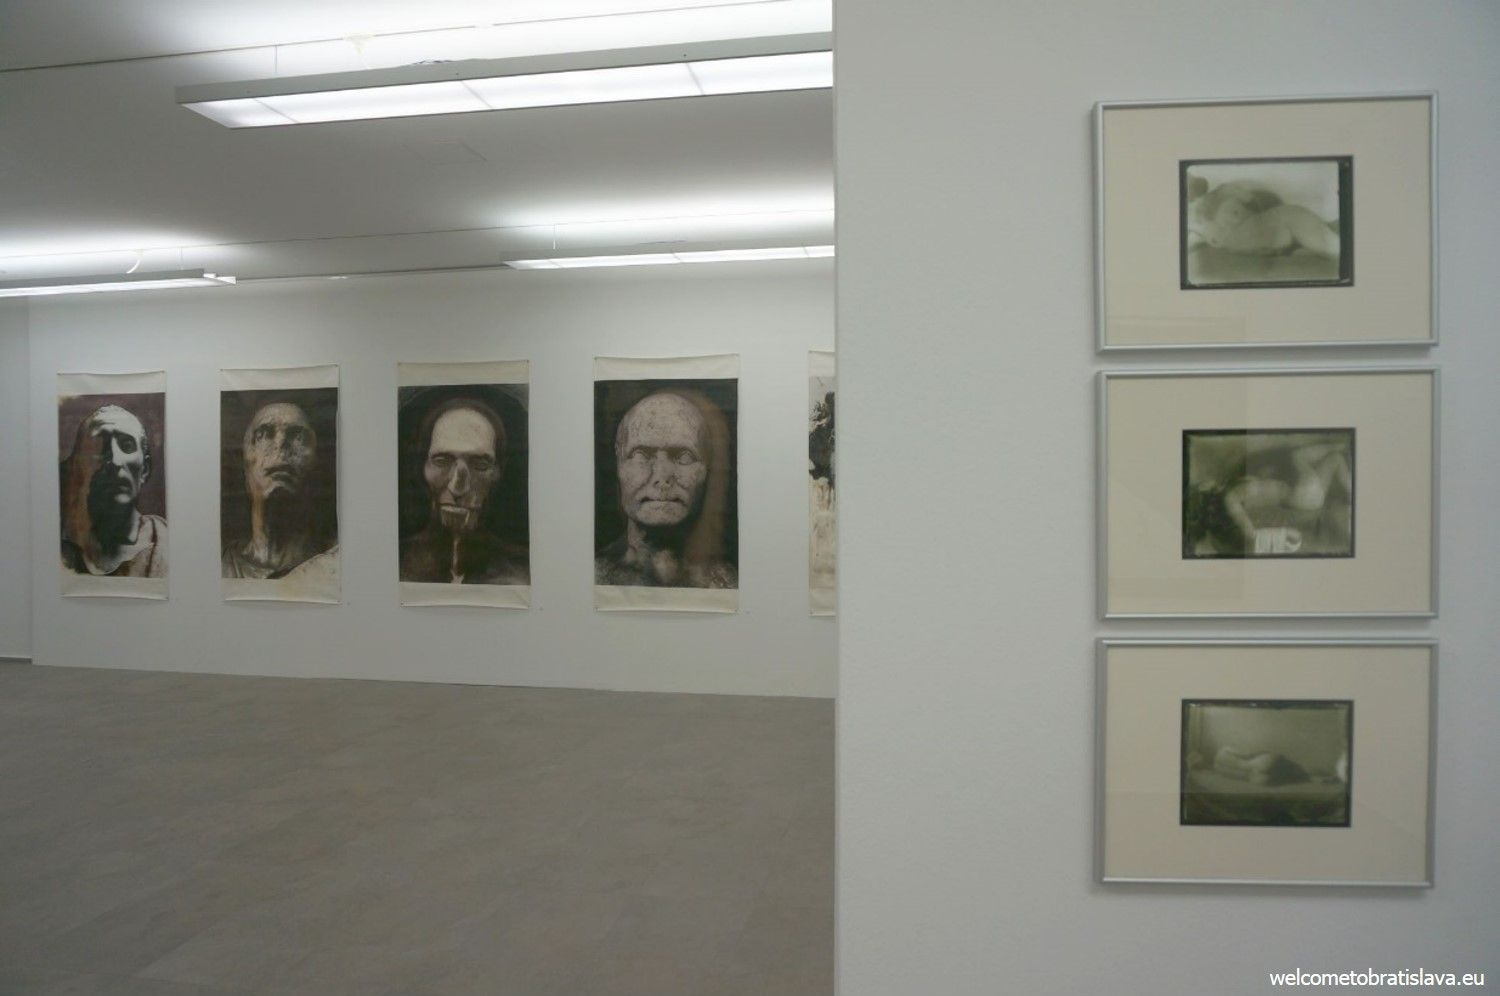 Photos from one of the exhibitions